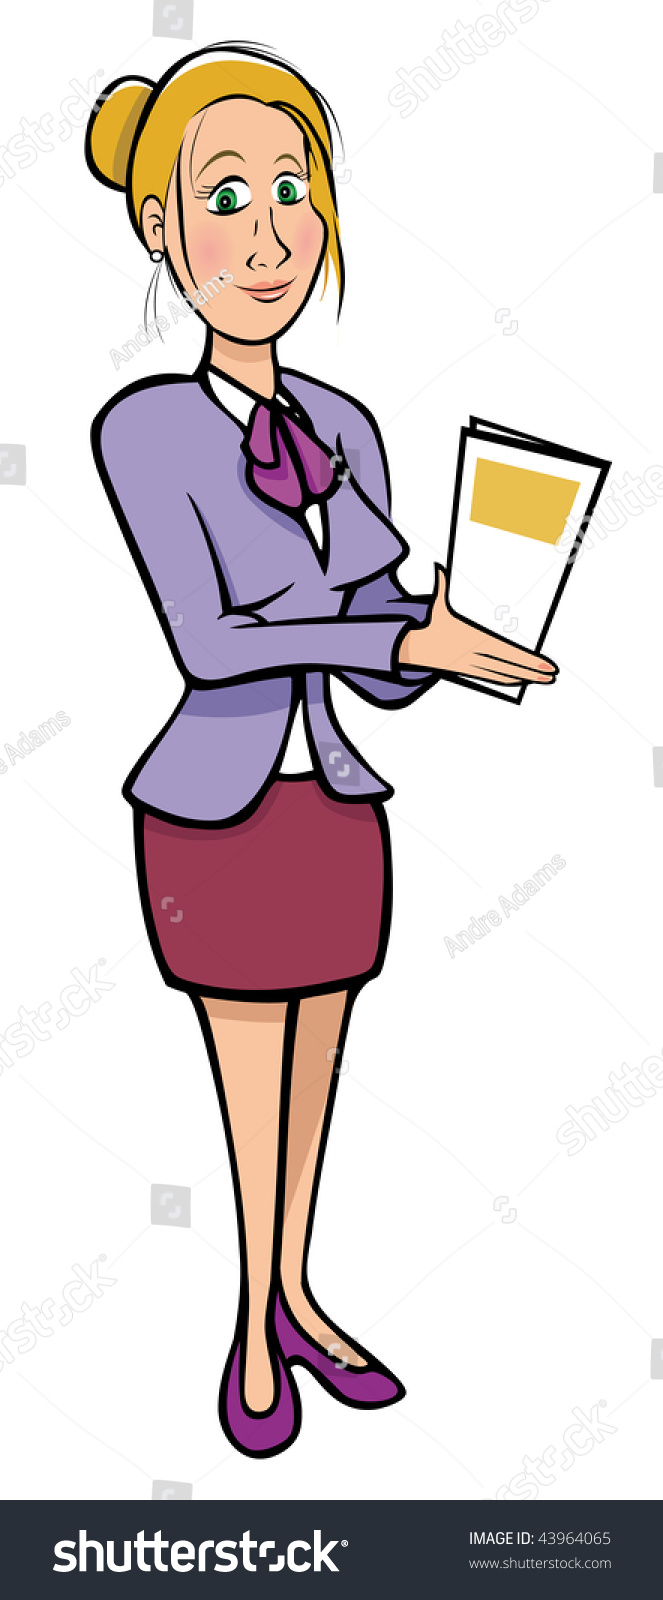 Cartoon Vector Illustration Sexy Secretary Stock Vector -5521